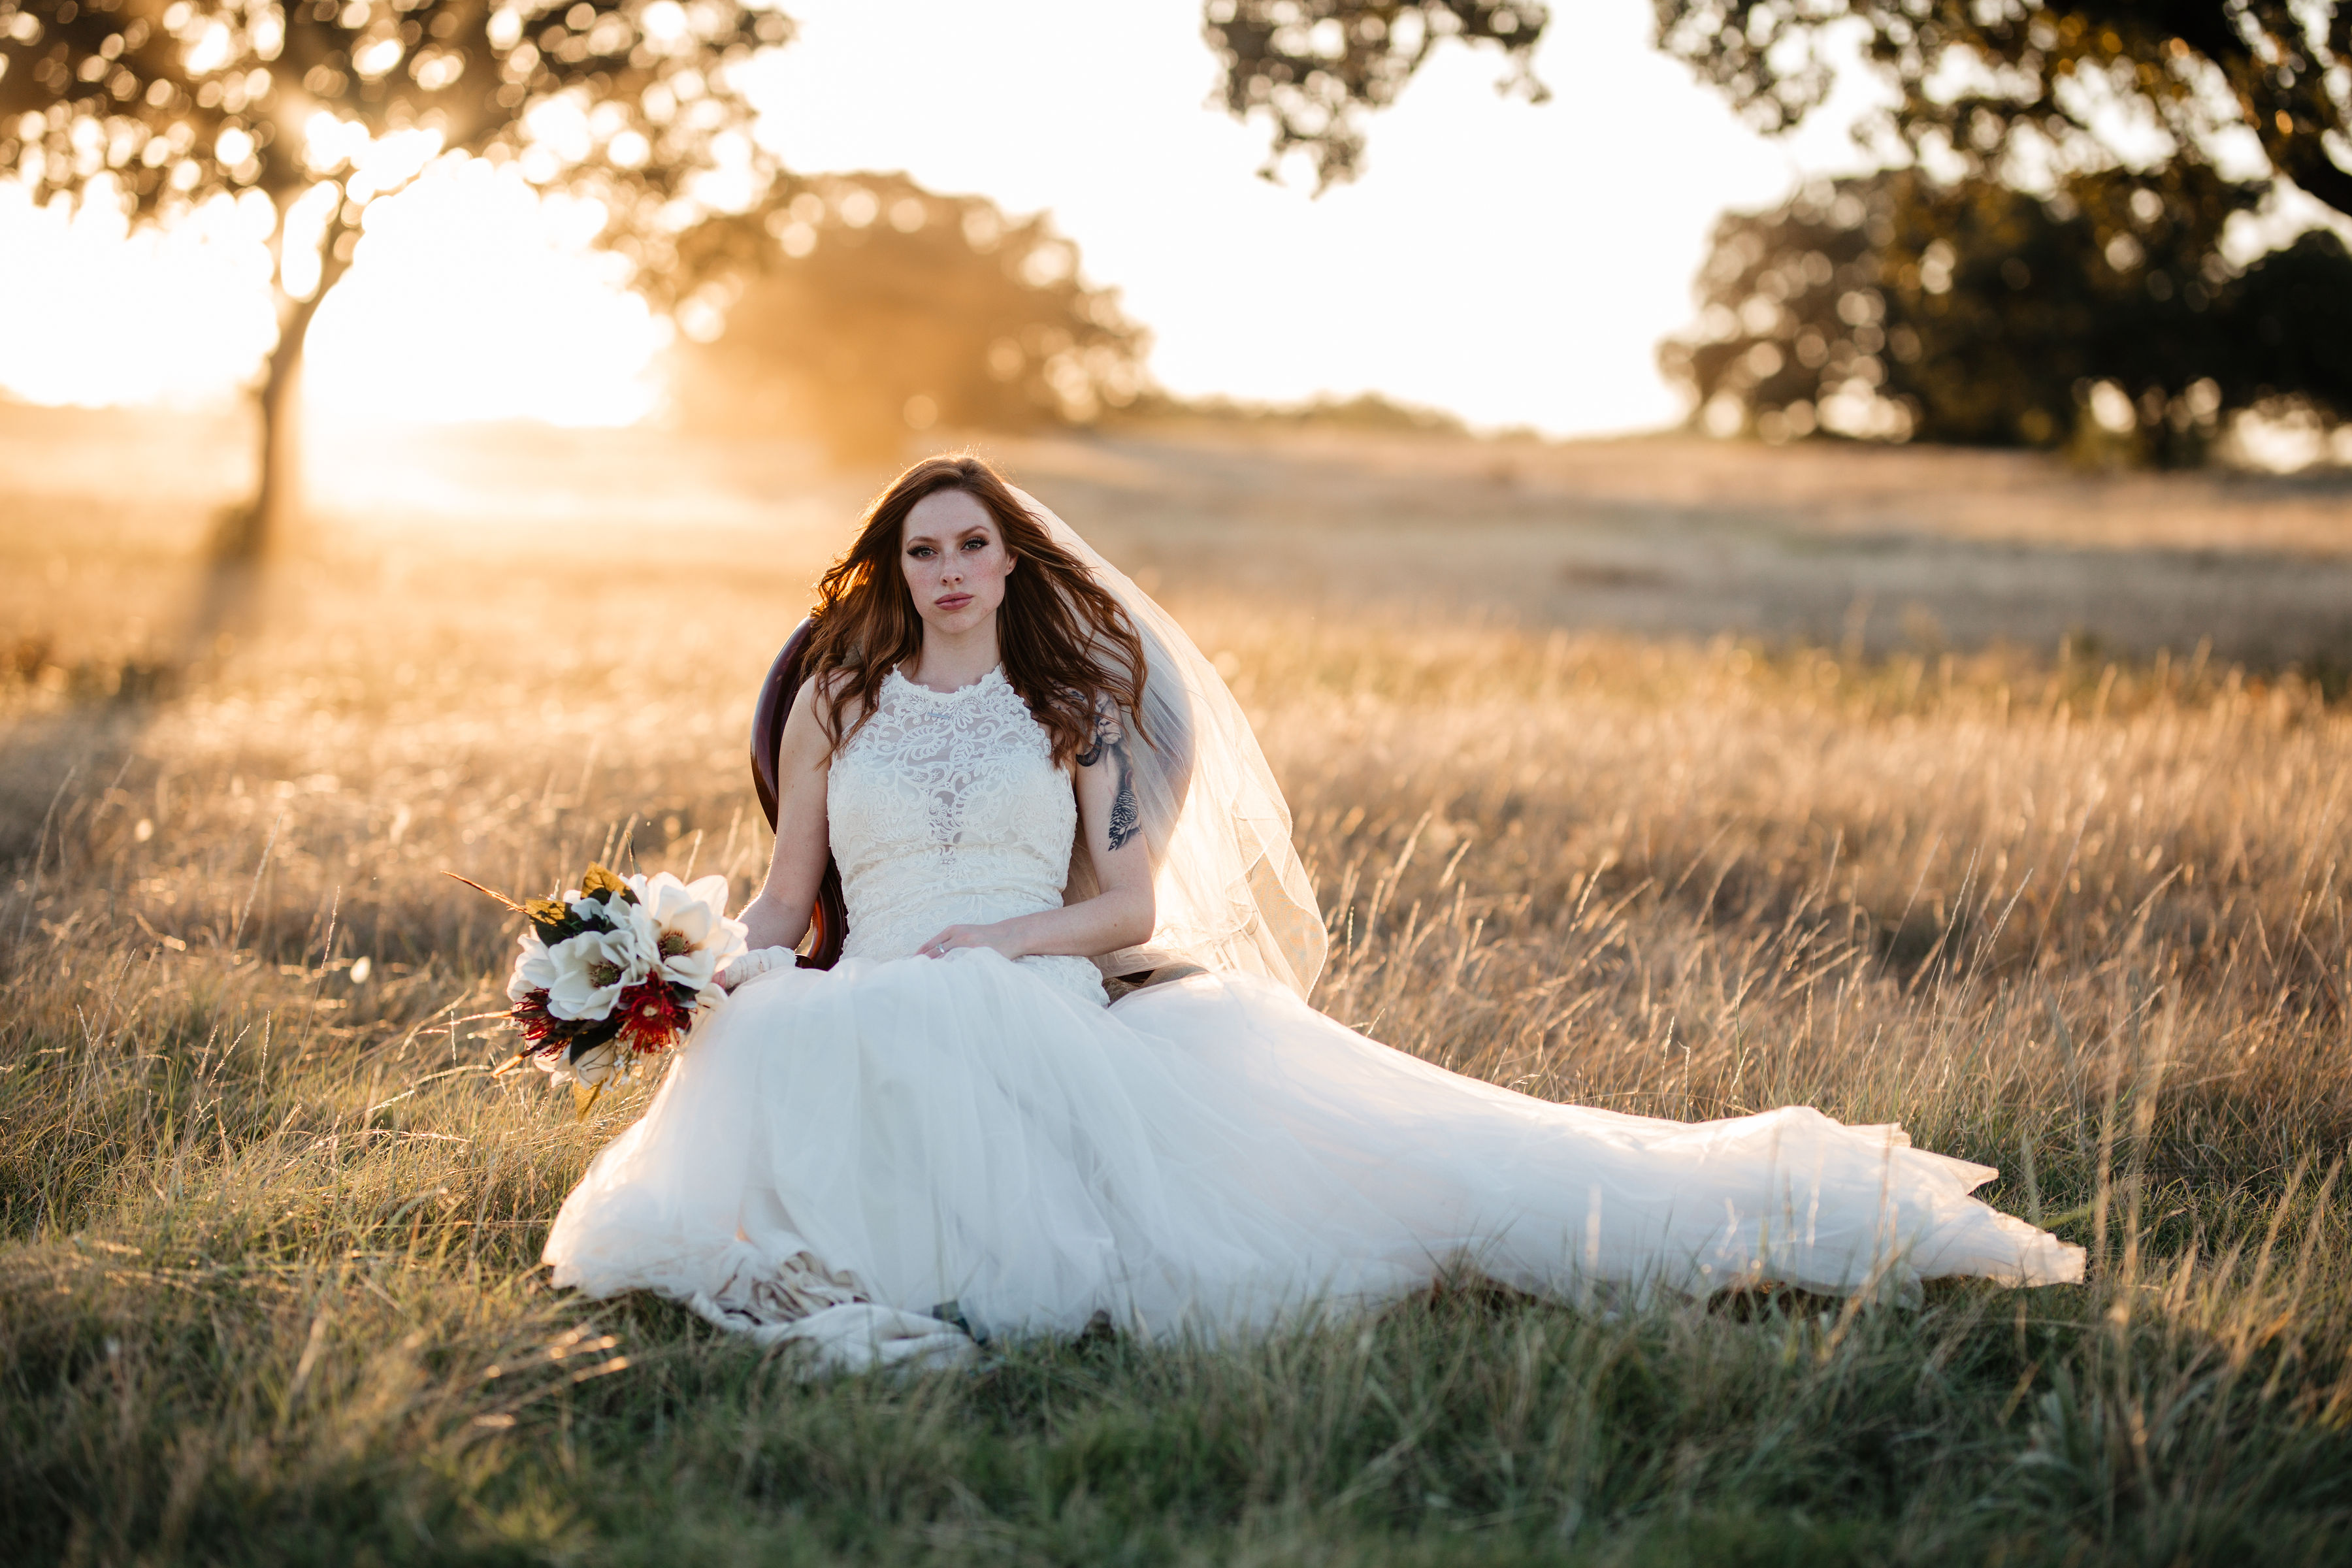 Gorgeous scenery for bridal portrait